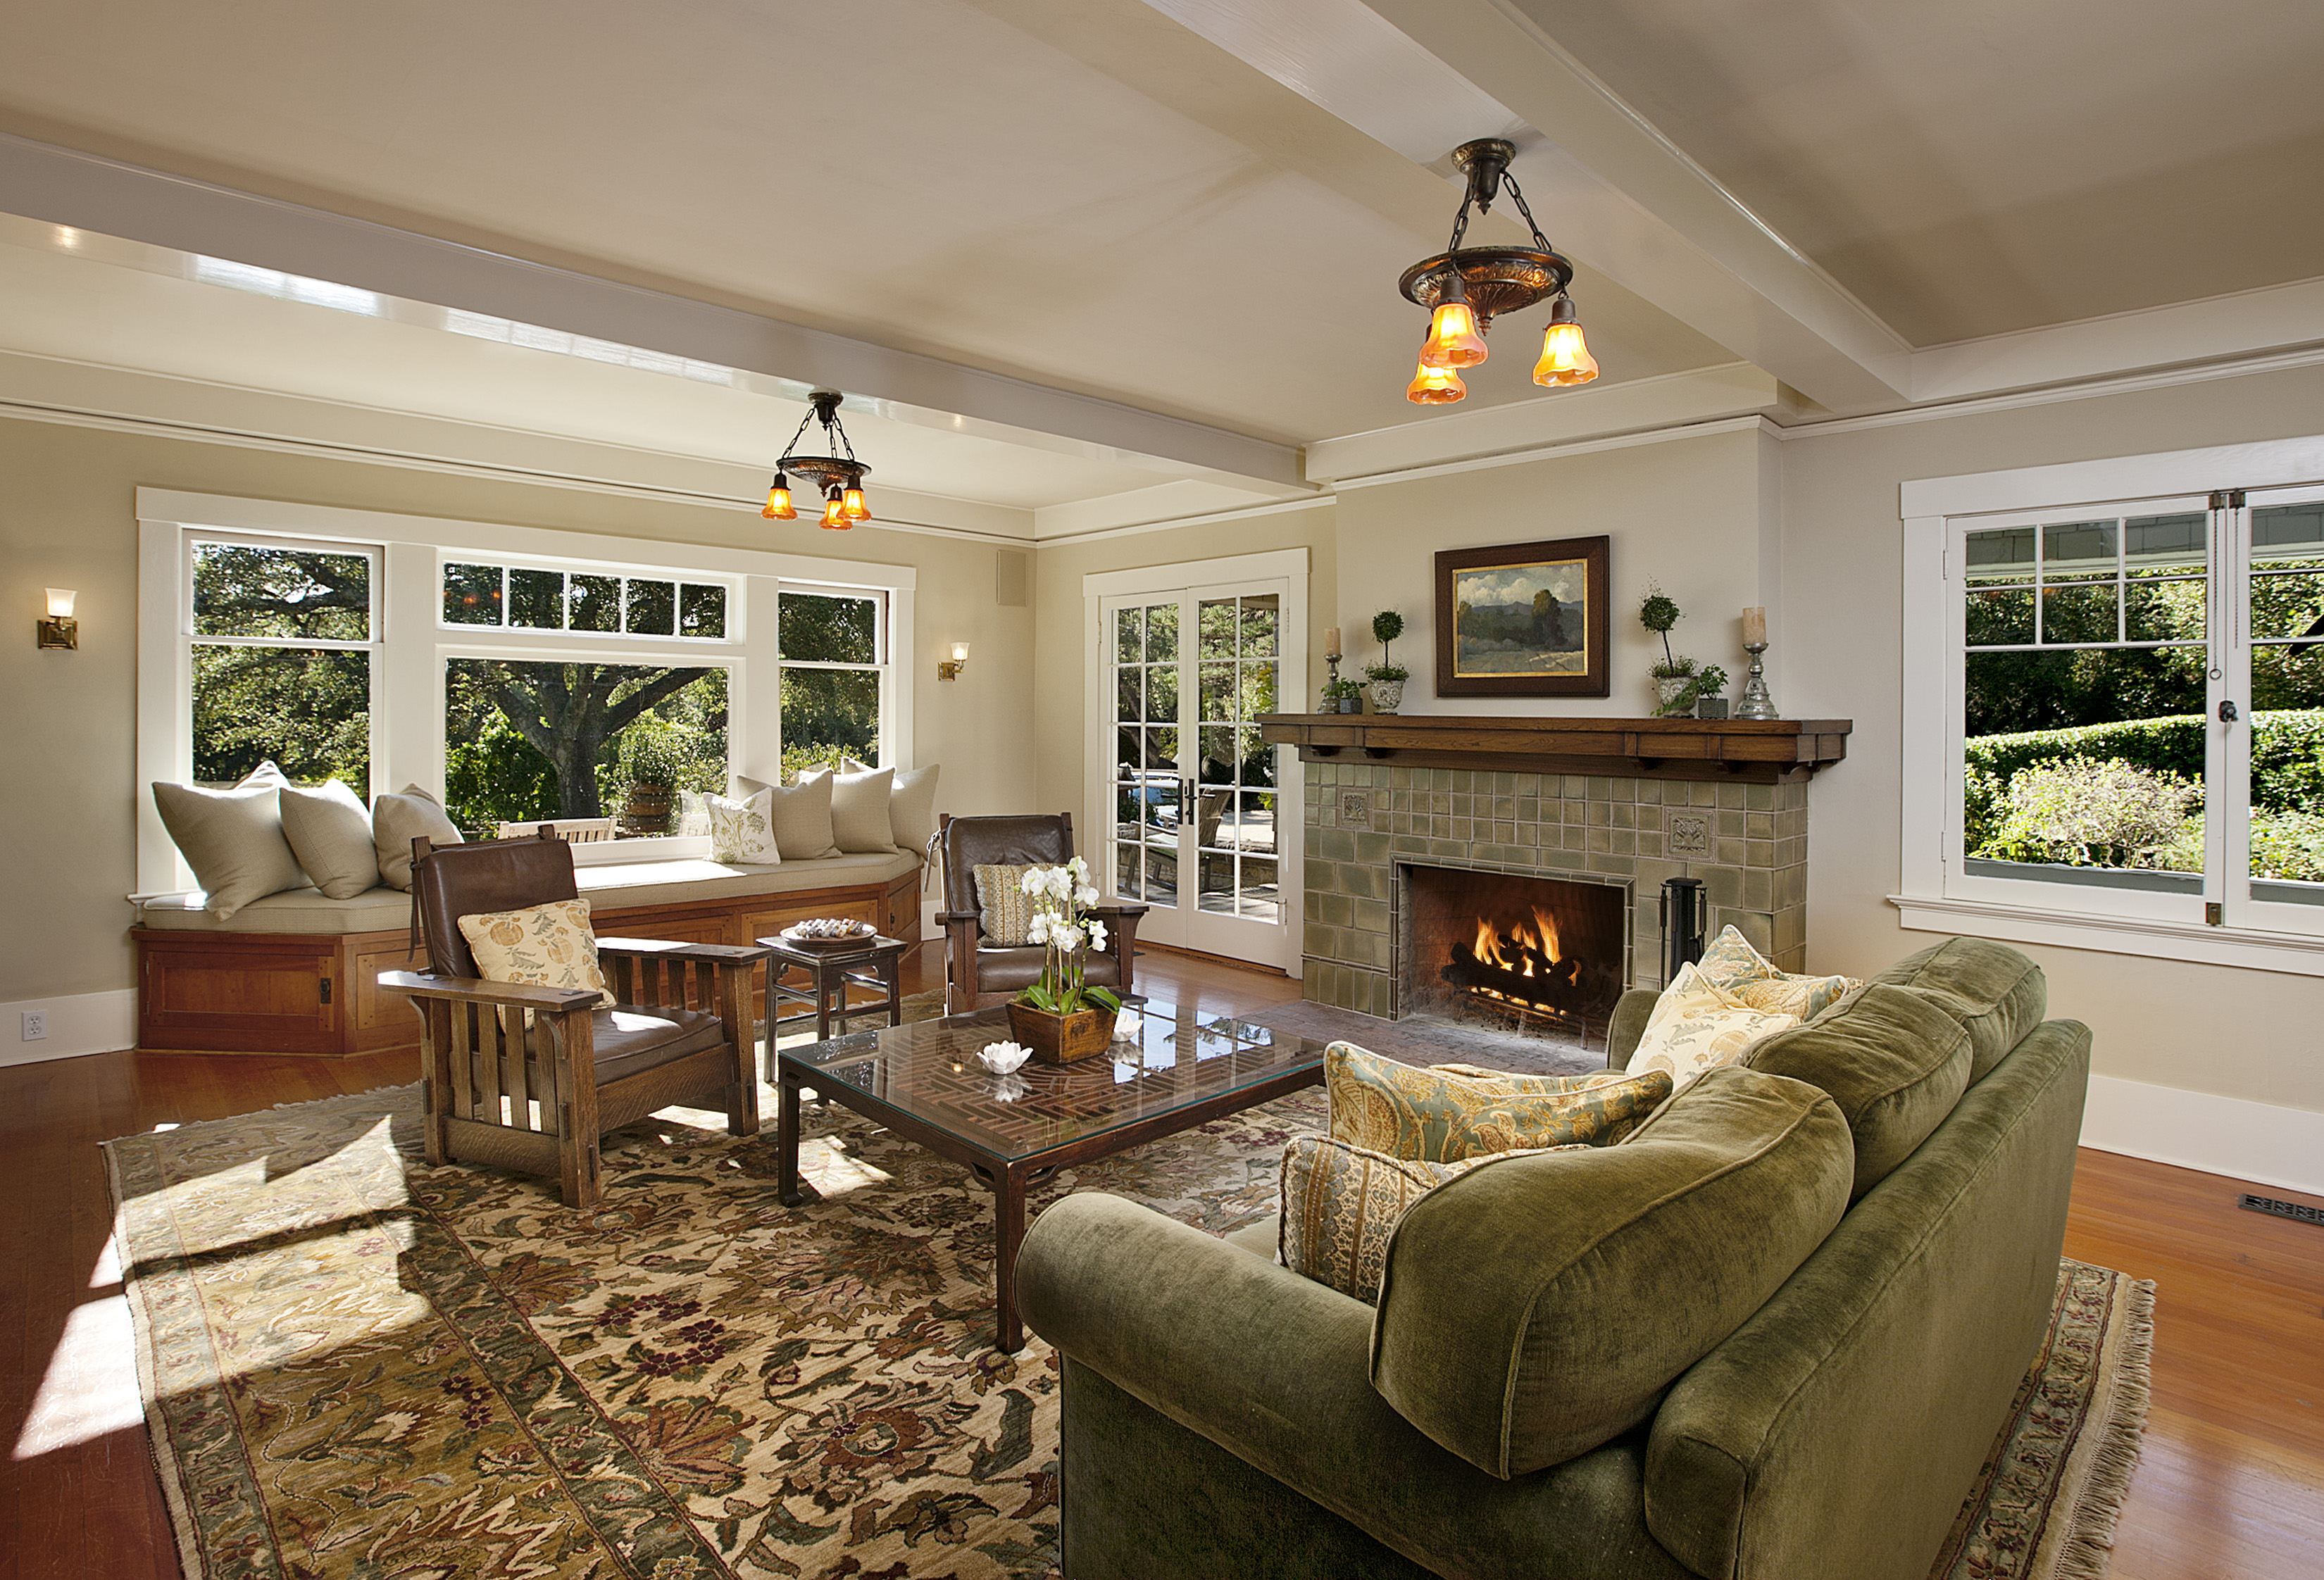 Popular home styles for 2012 montecito real estate - House interior design pictures living room ...